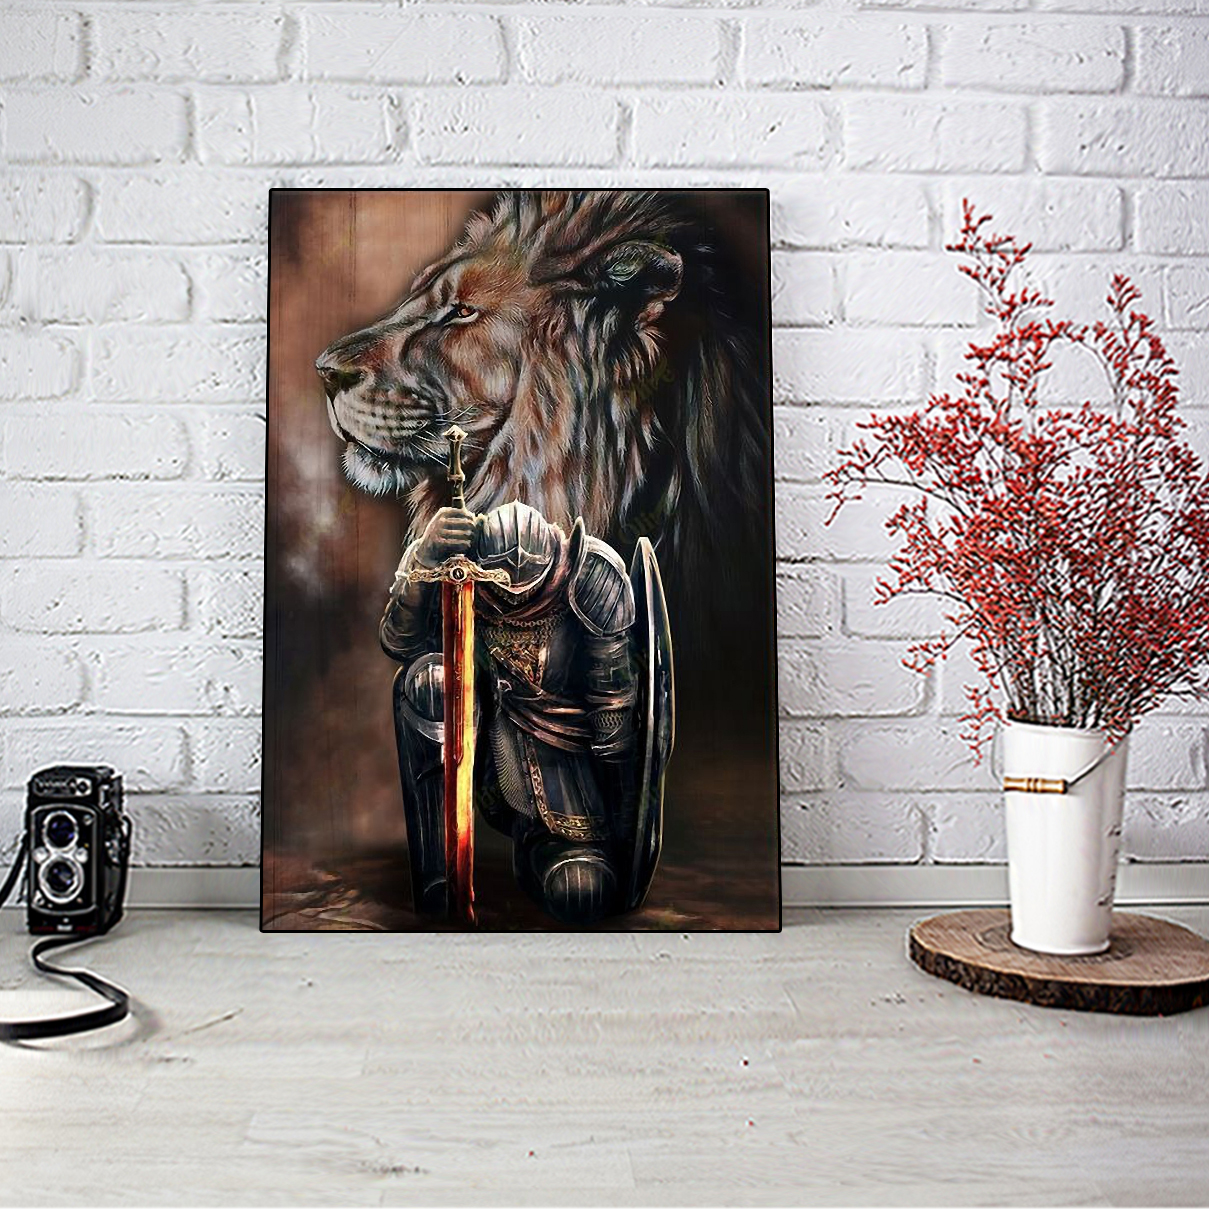 Lion Warriors I am the storm canvas small